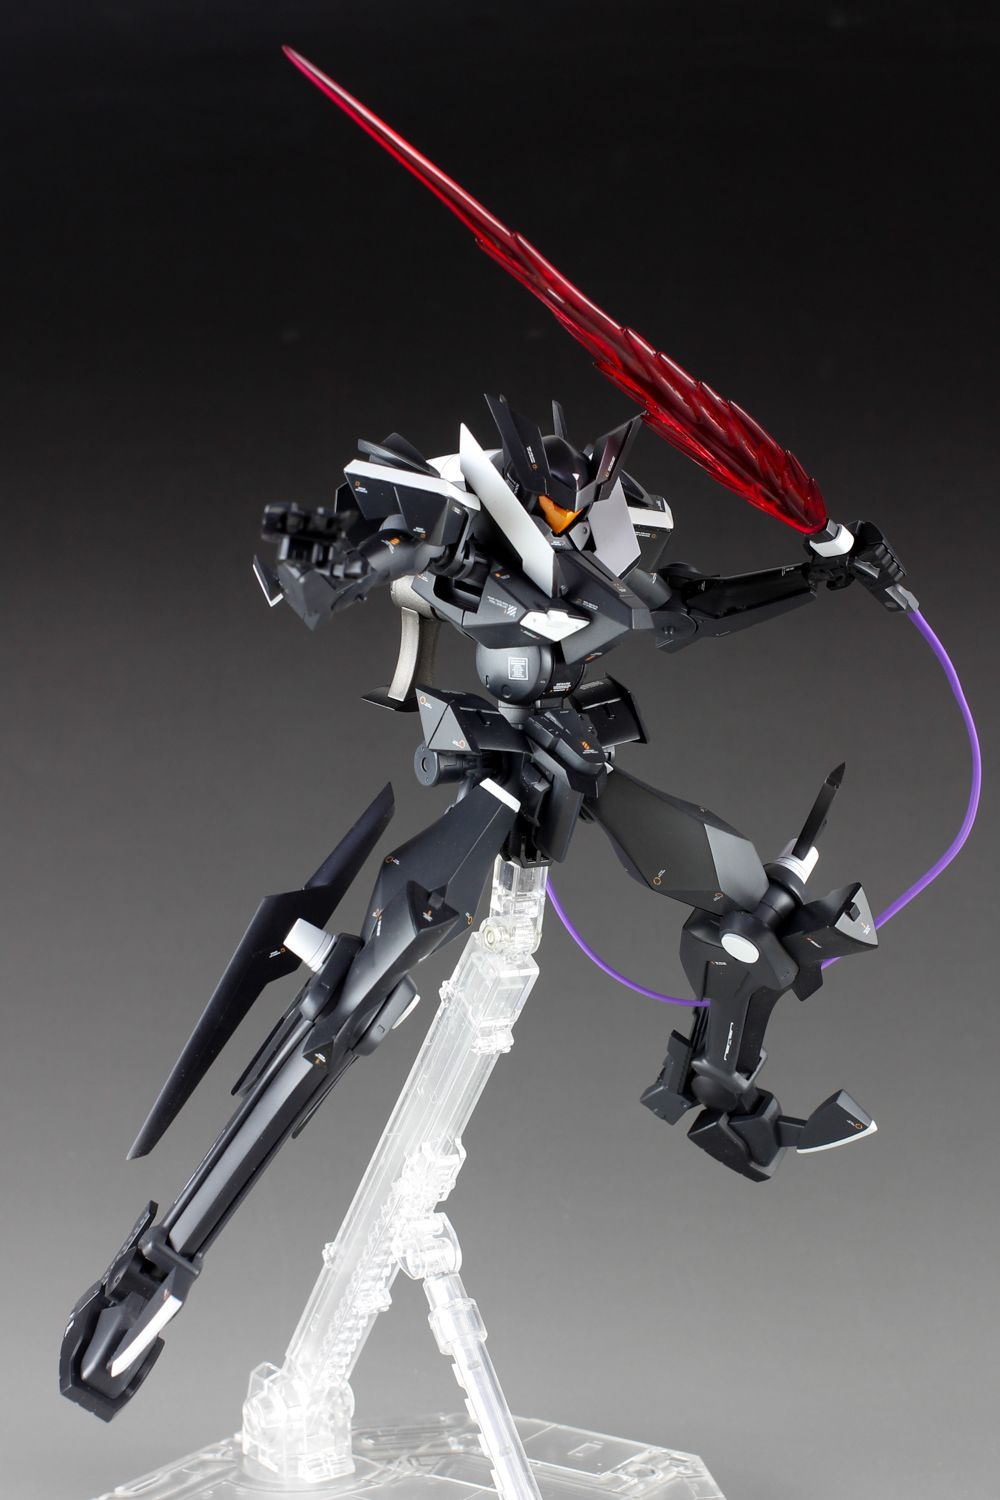 GUNDAM GUY: 1/100 GN Flag - Customized Build | Mecha Stuff | Pinterest